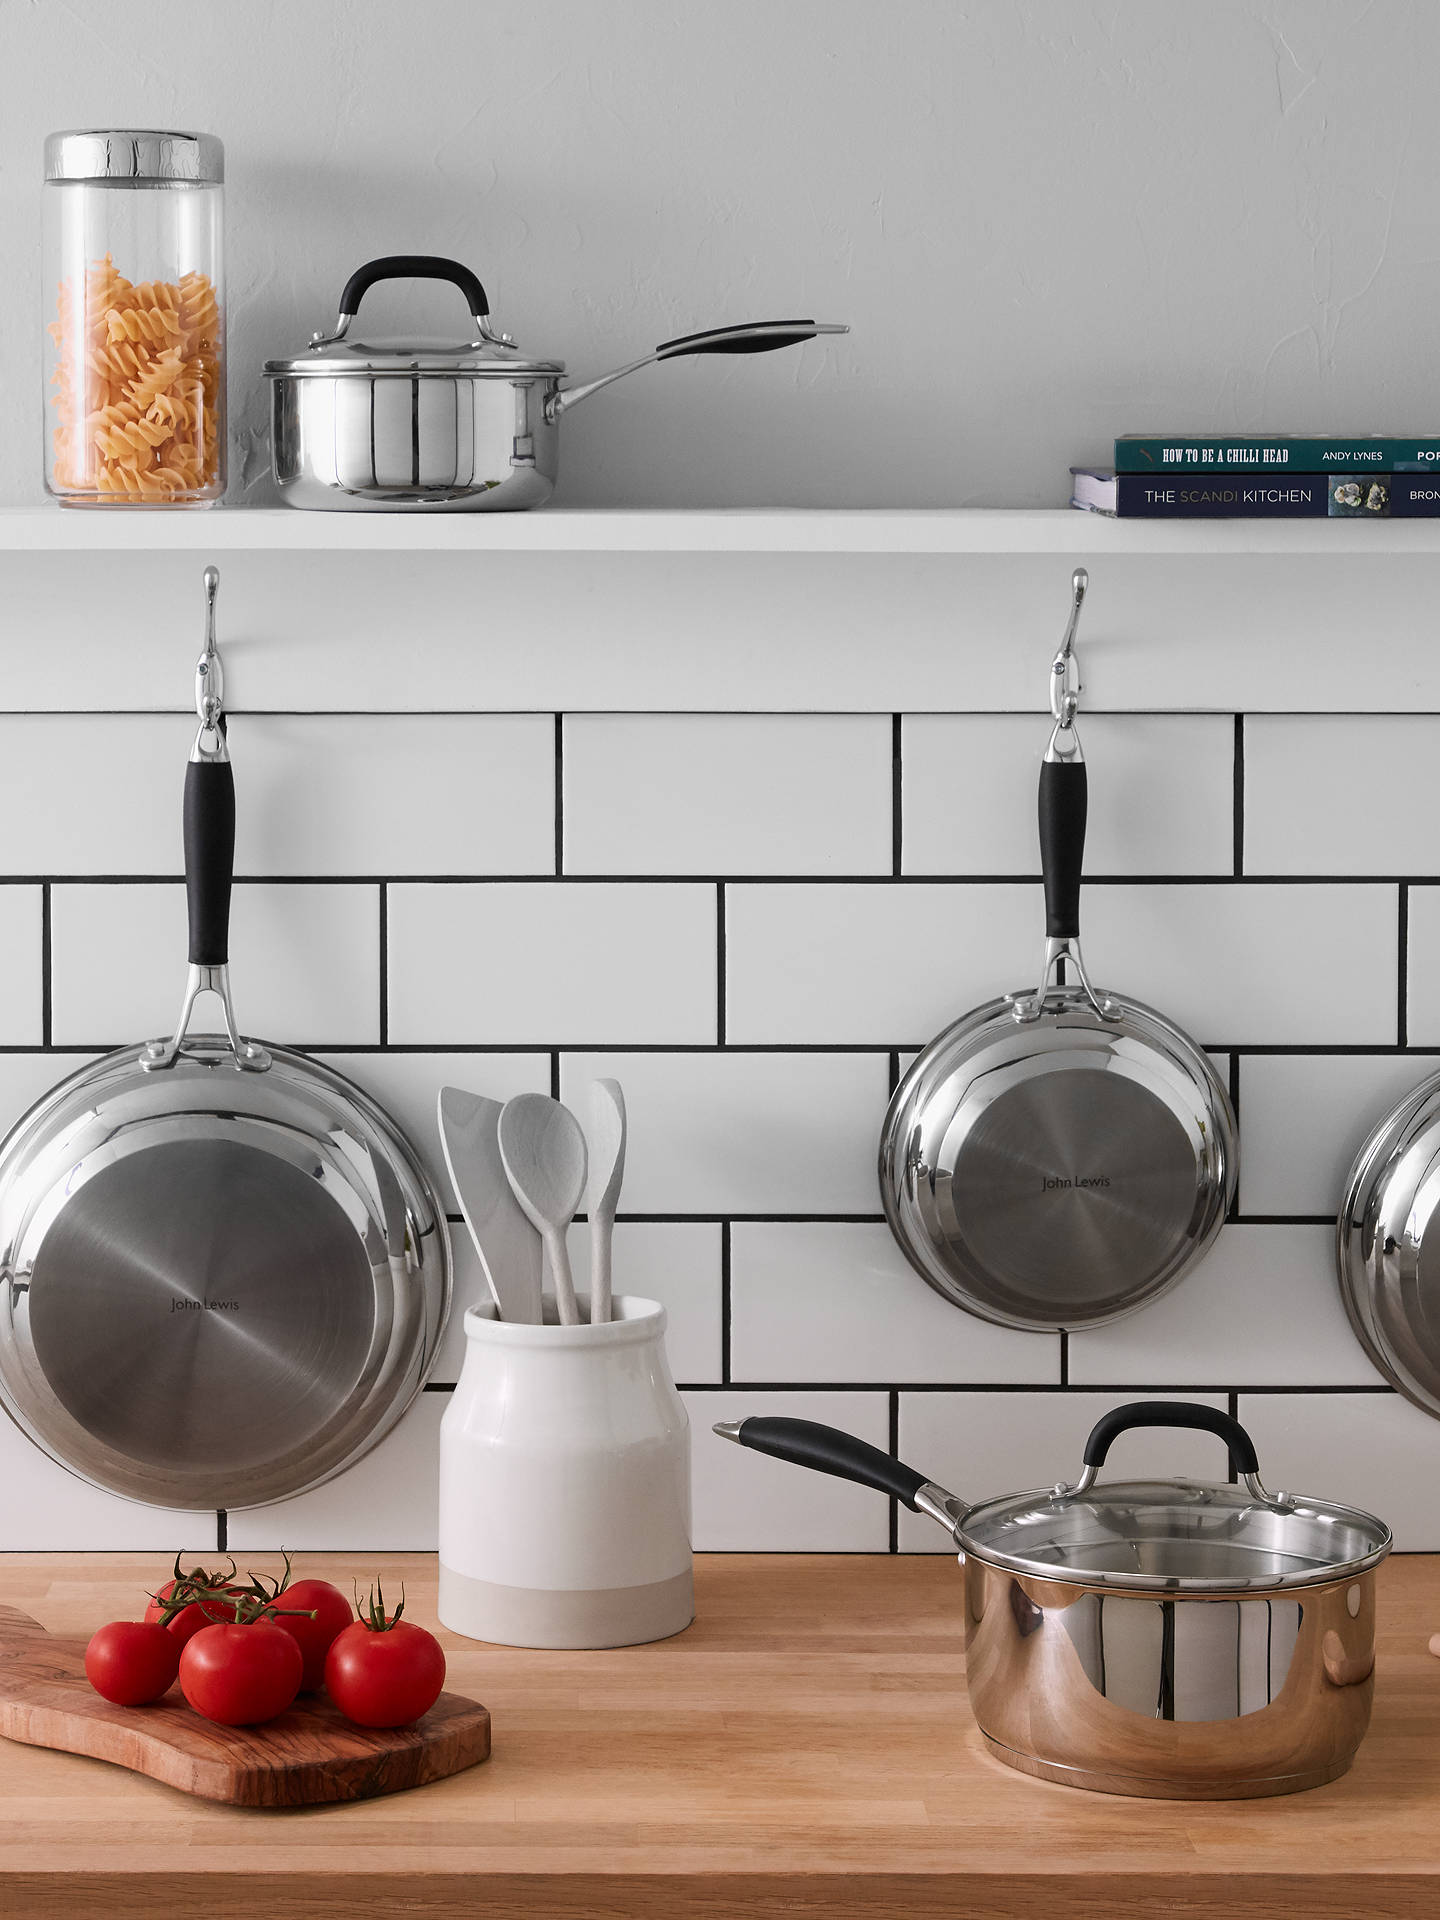 Buy John Lewis & Partners 'The Pan' Stainless Steel Lidded Saucepans and Pan Set, 5 Pieces Online at johnlewis.com